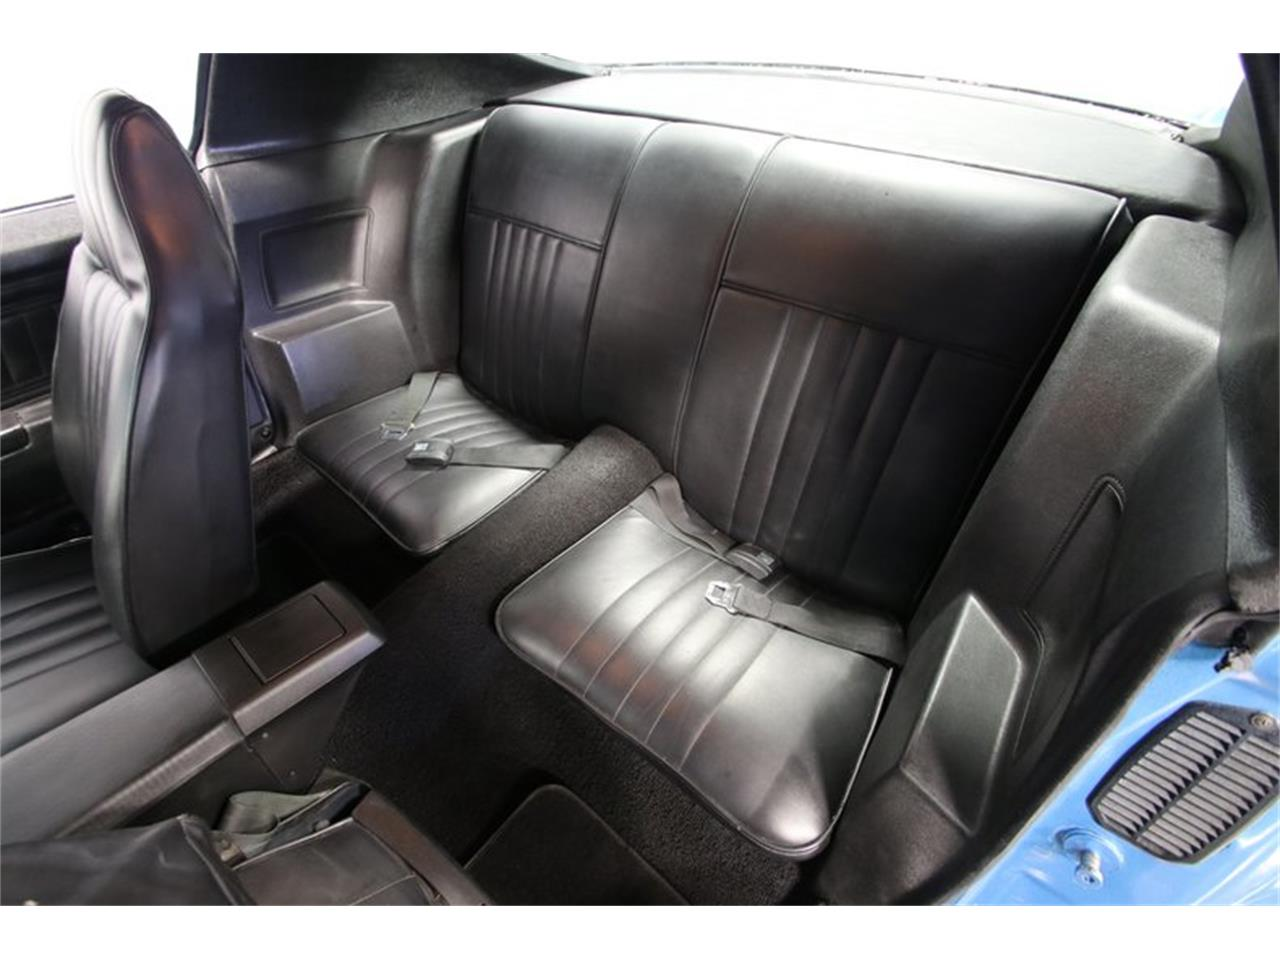 Large Picture of 1970 Chevrolet Camaro located in North Carolina - $36,995.00 Offered by Streetside Classics - Charlotte - QRKC